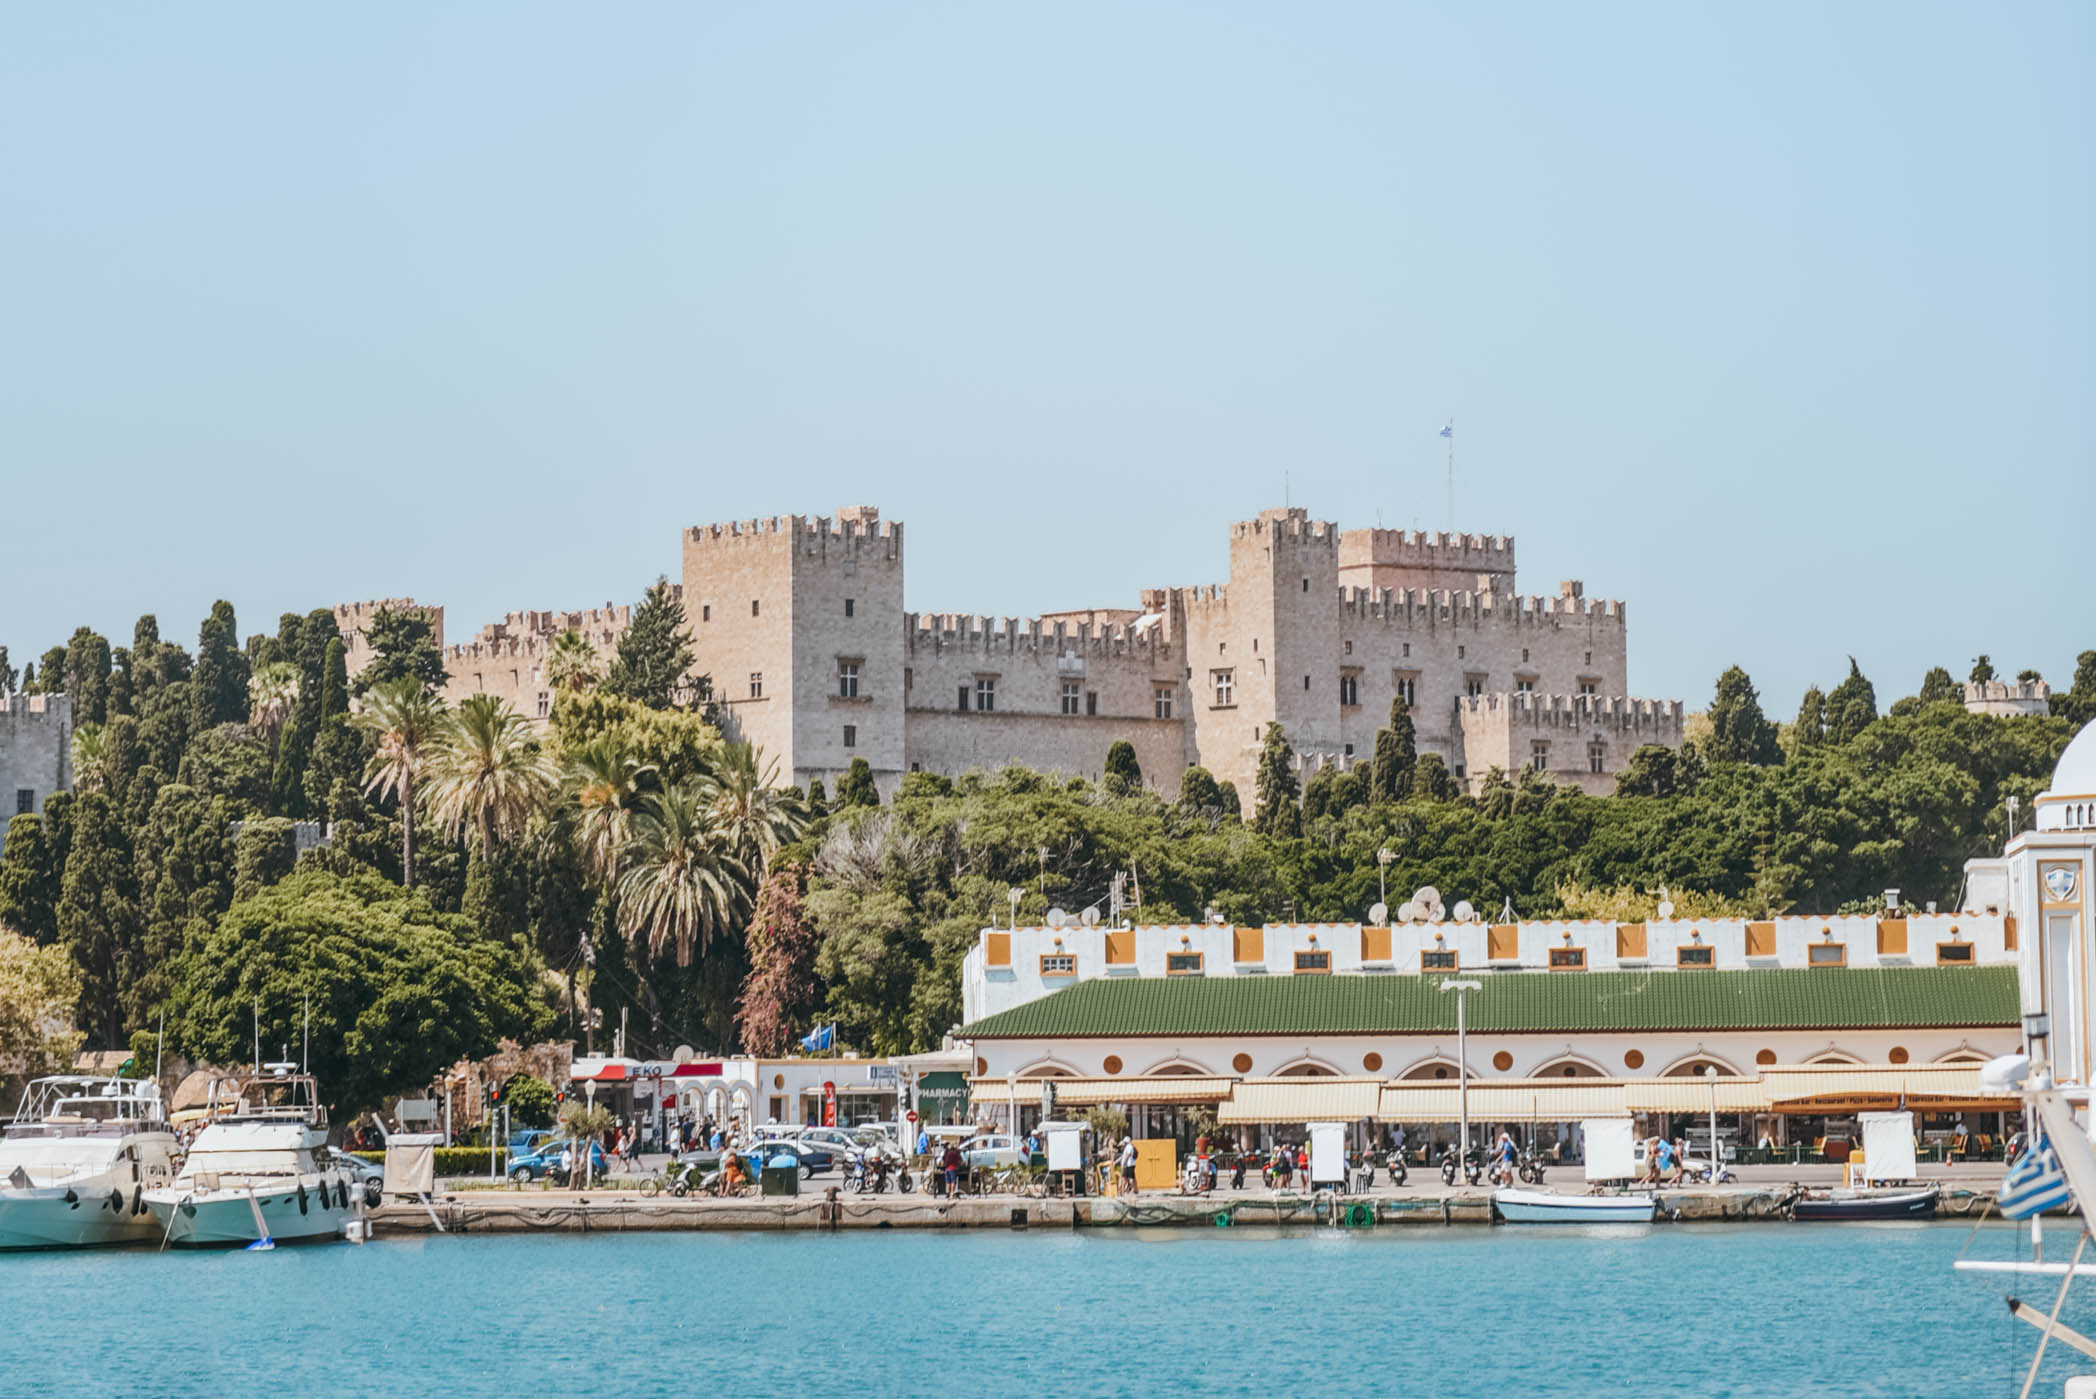 view of Medieval Rhodes from the harbor